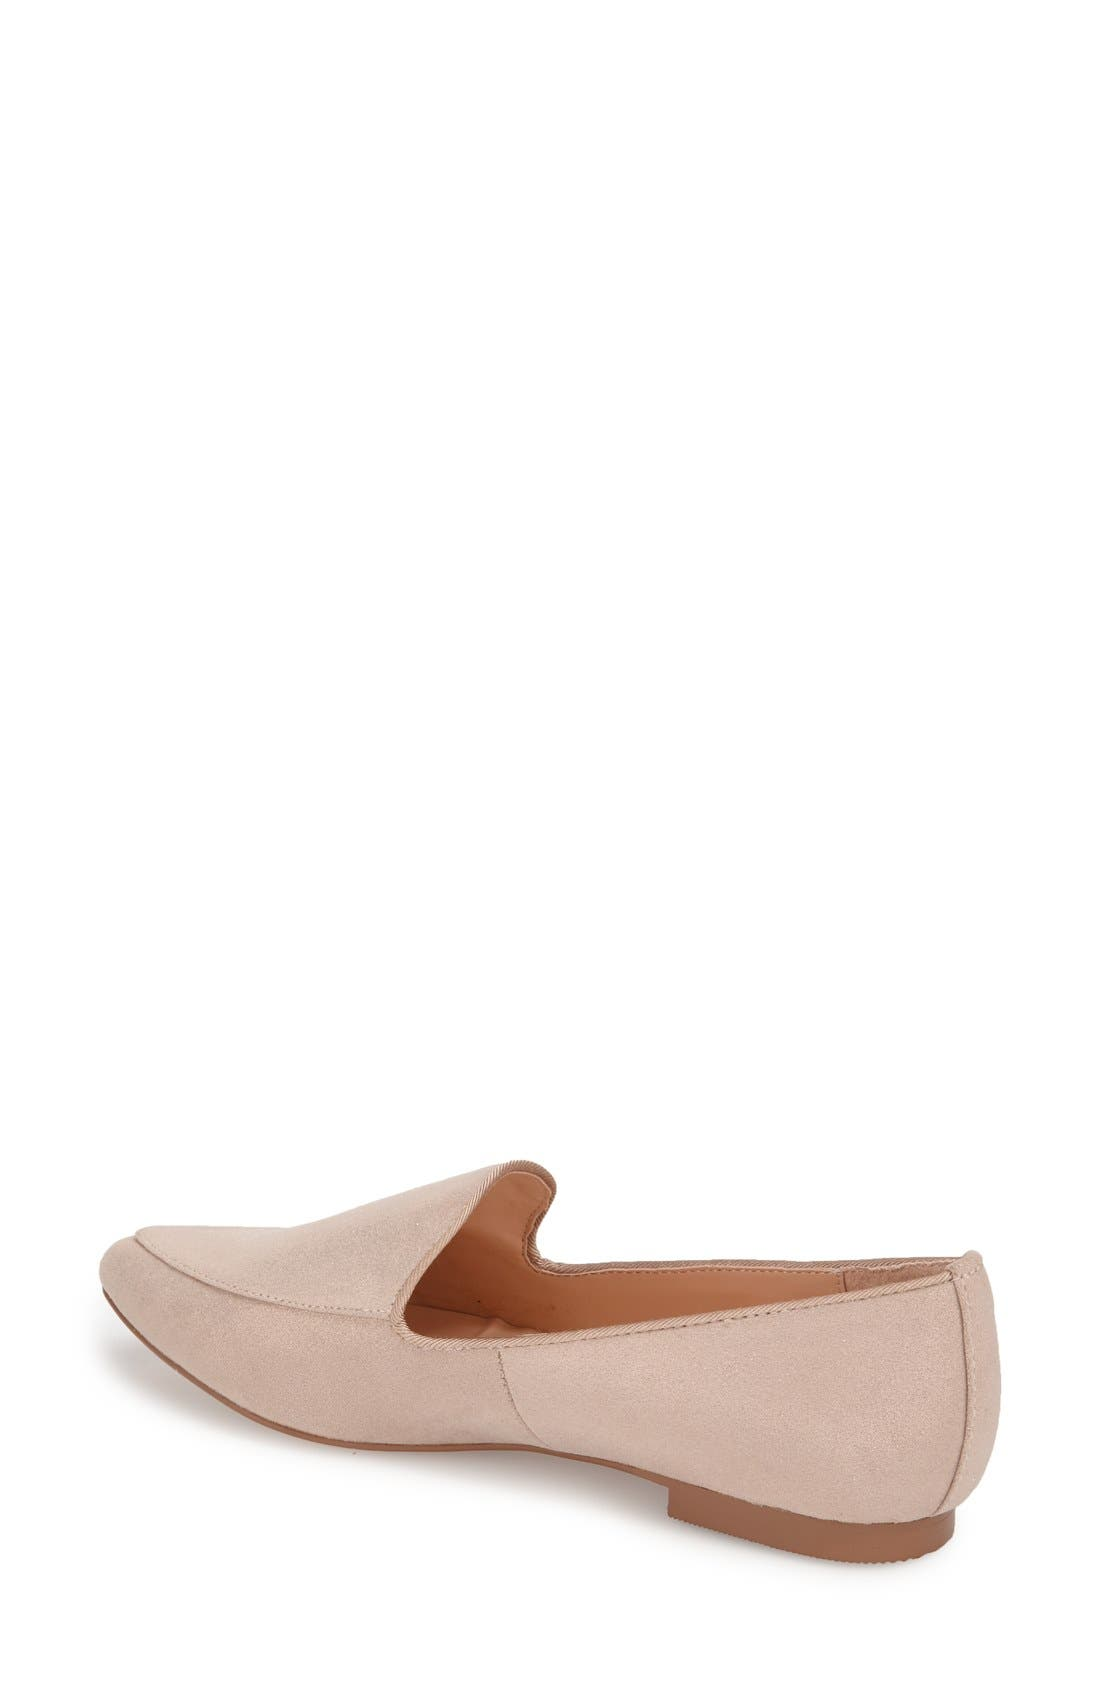 'Sean' Pointy Toe Loafer,                             Alternate thumbnail 2, color,                             Nude Metallic